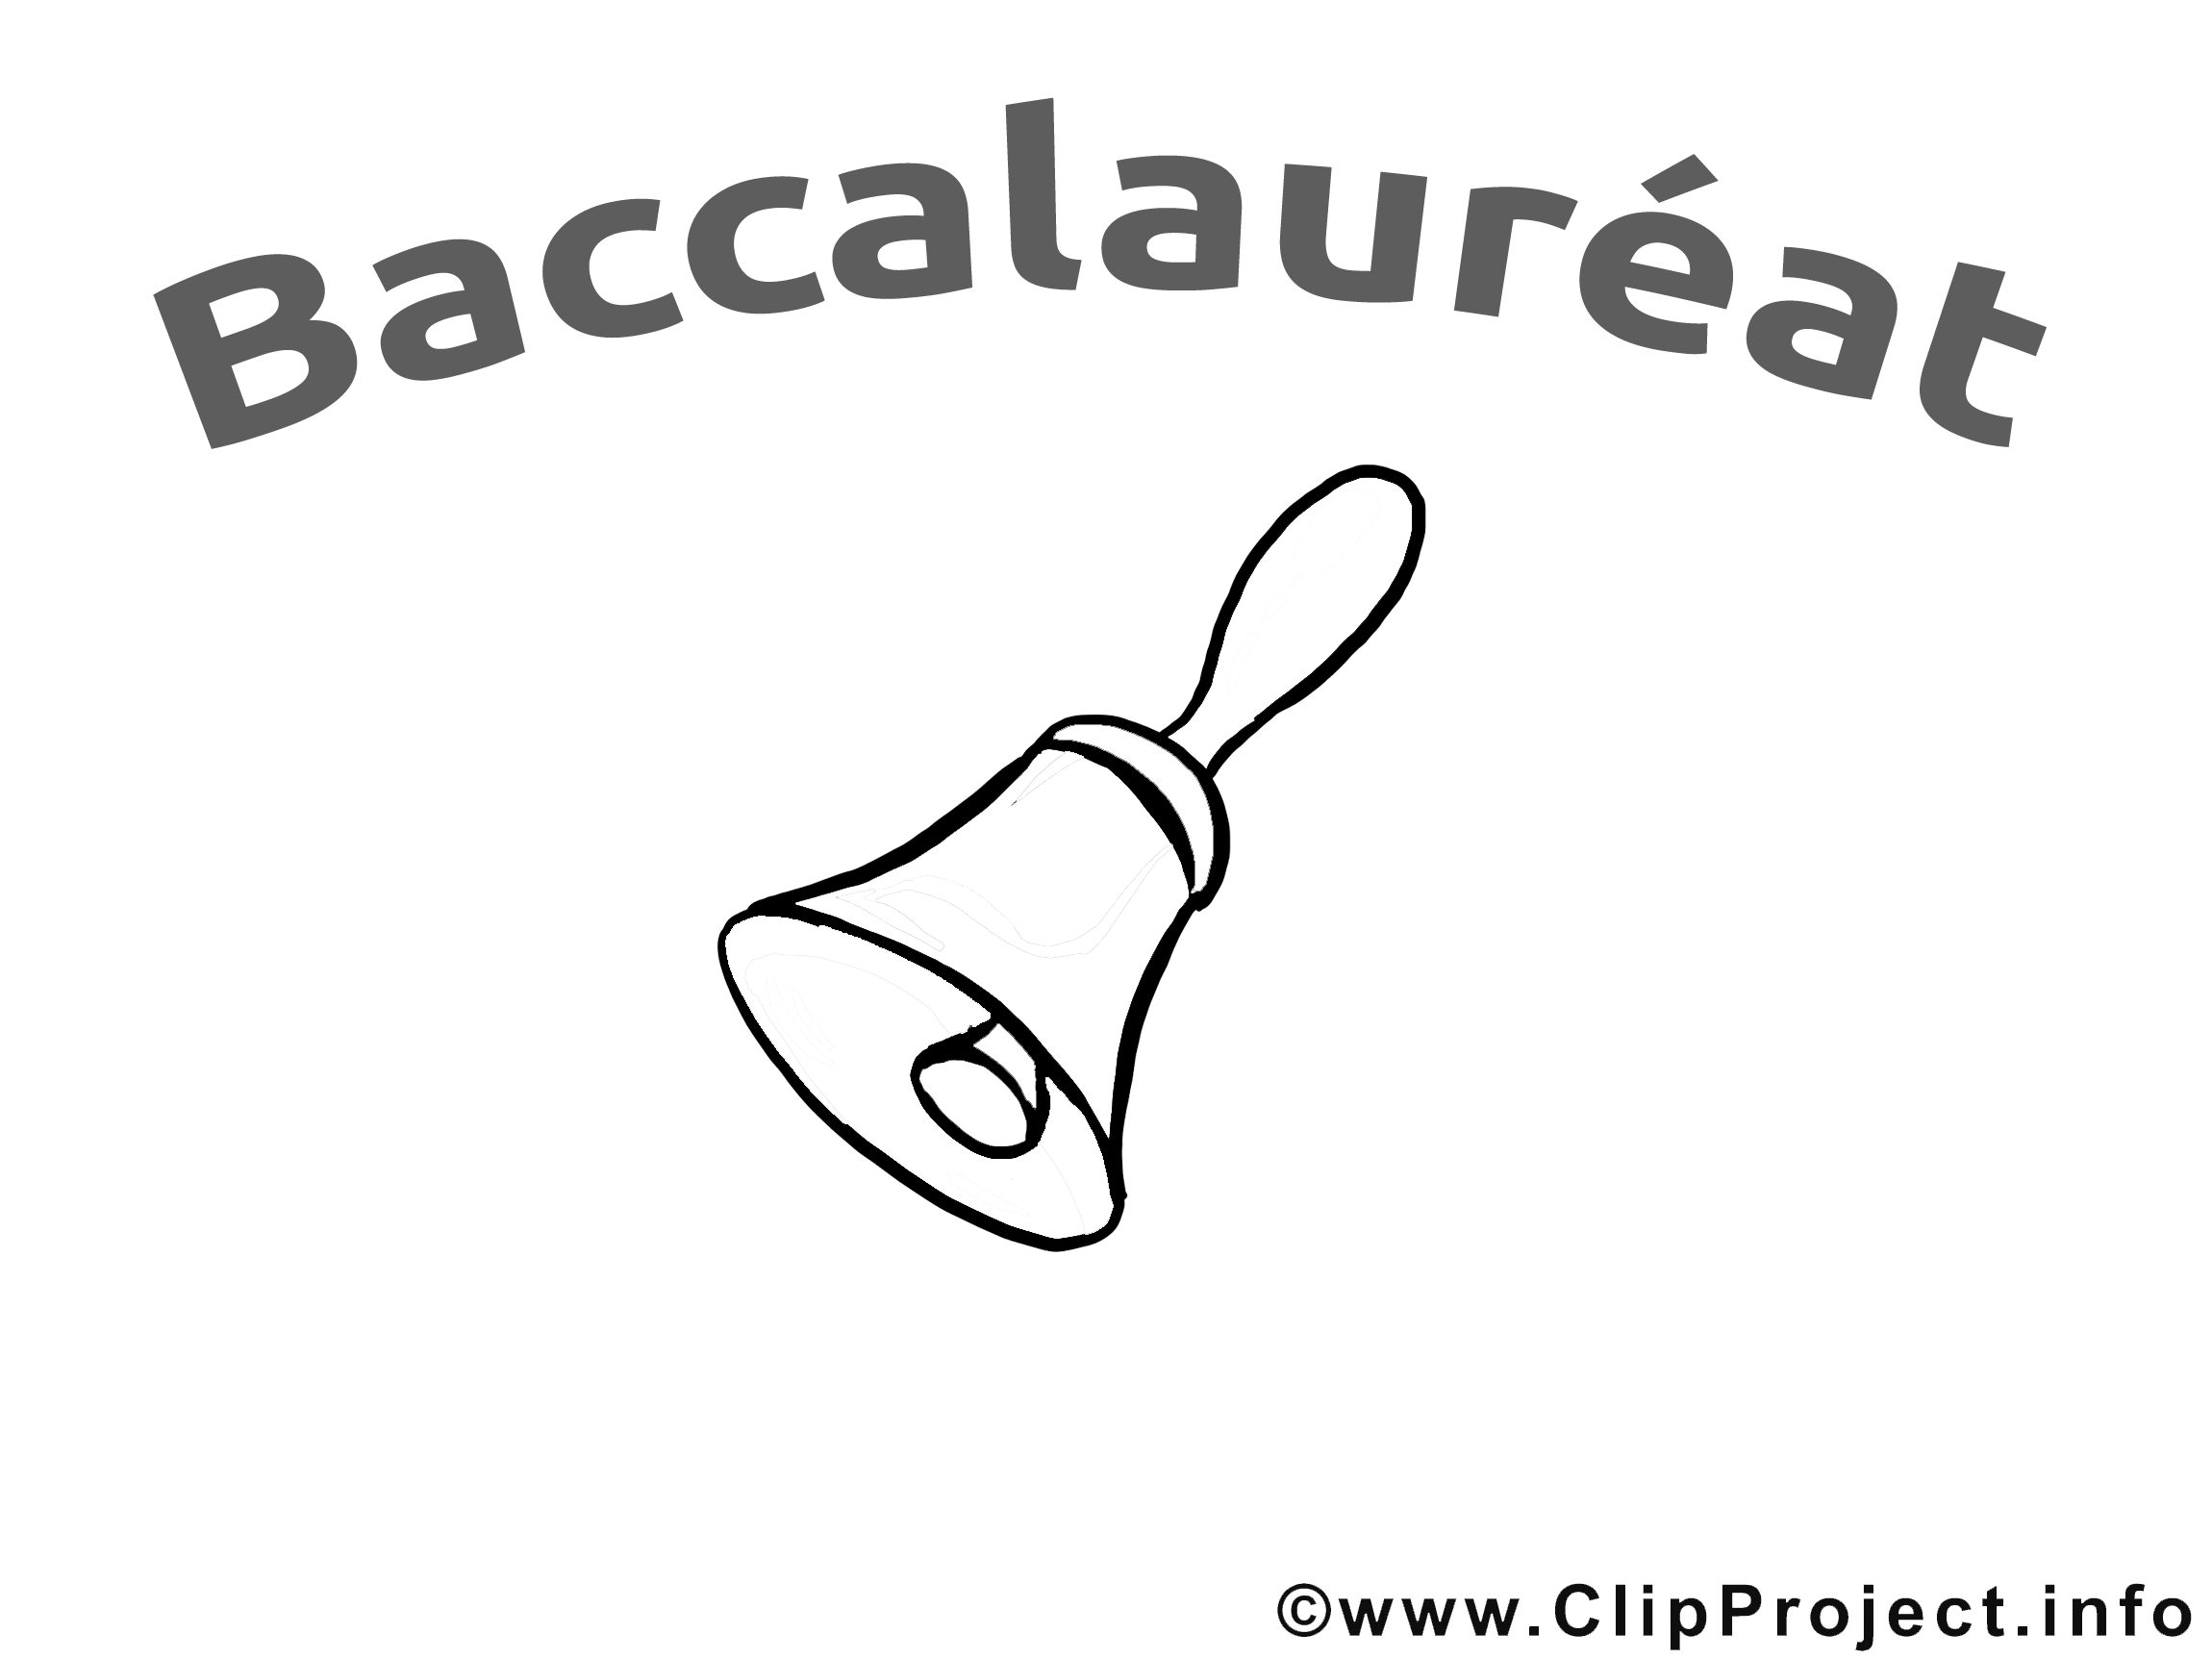 Clochette illustration à colorier – Baccalauréat clipart